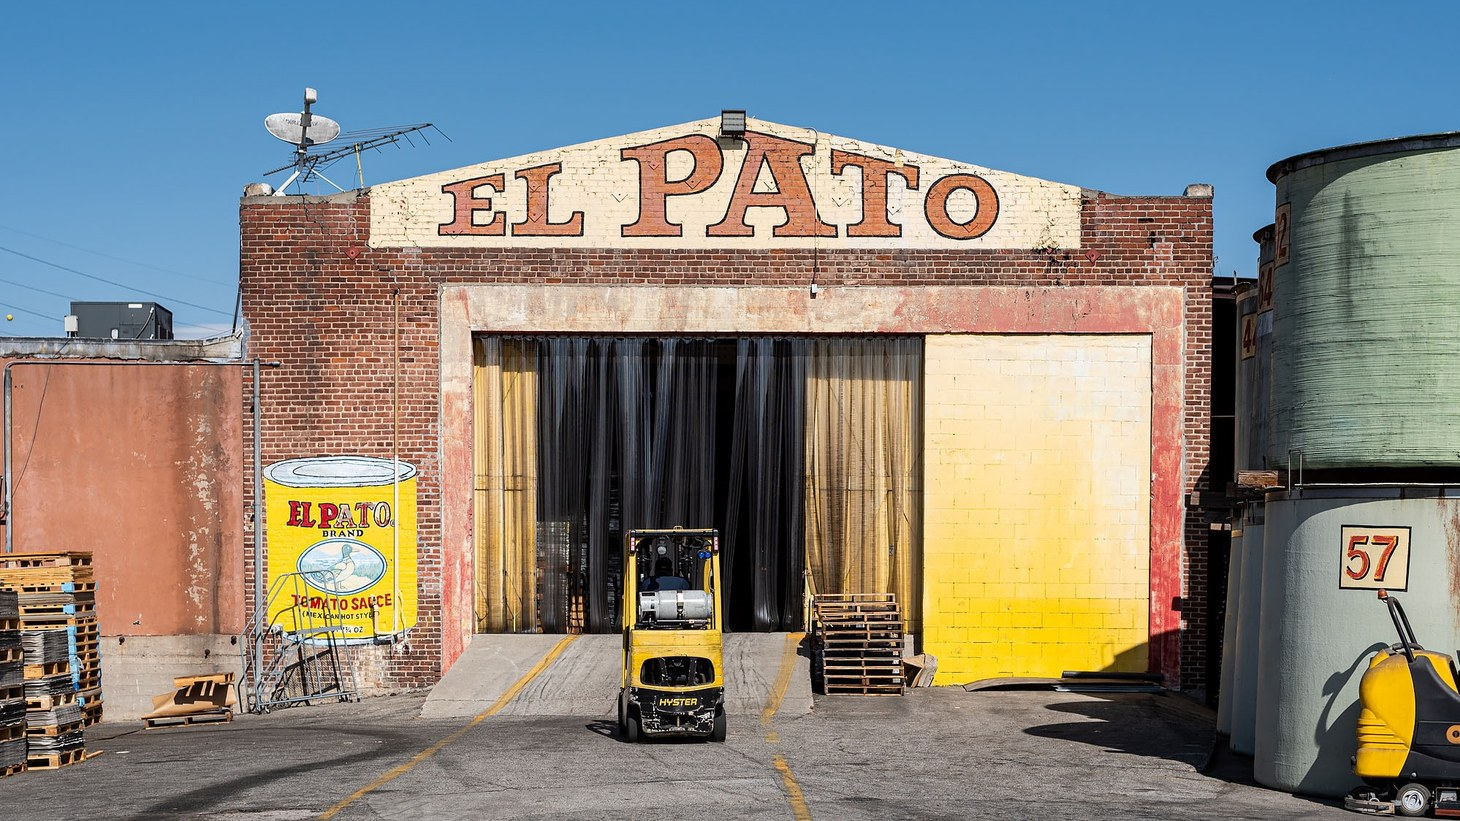 Ever-present in the grocery store aisle, the ubiquitous Angeleno hot sauce, El Pato, is manufactured in East LA.